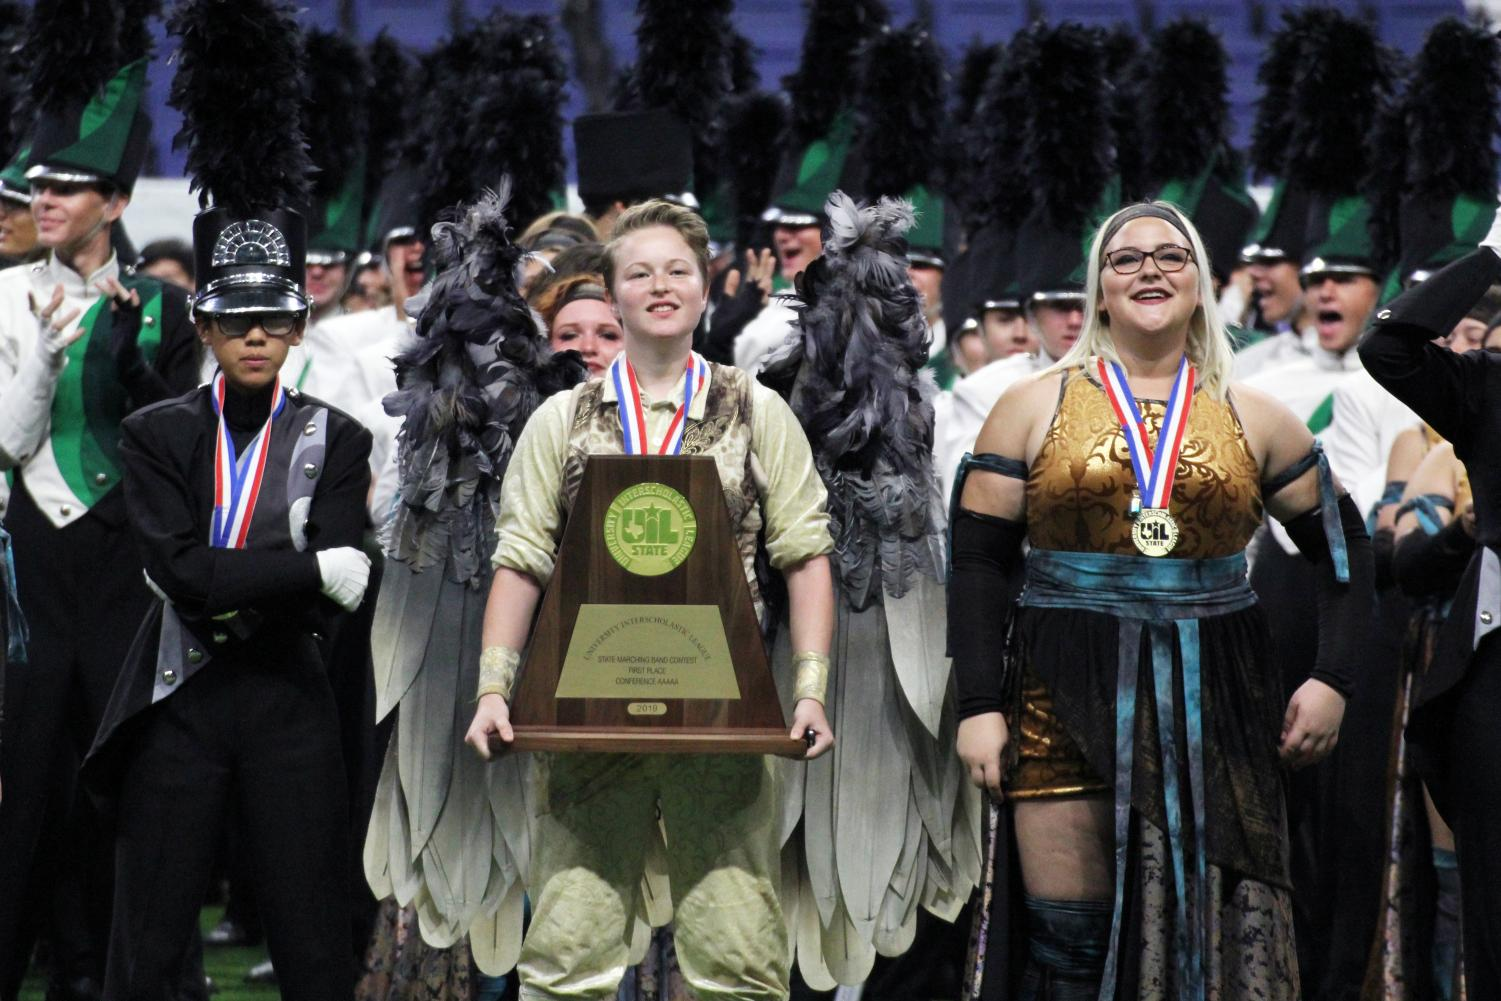 Surrounded by her fellow band members, sophomore Kierstyn Born holds the UIL state championship trophy. Born played Icarus in this year's show. She said that although she was nervous leading up to finals, afterwards she felt confident in their performance.